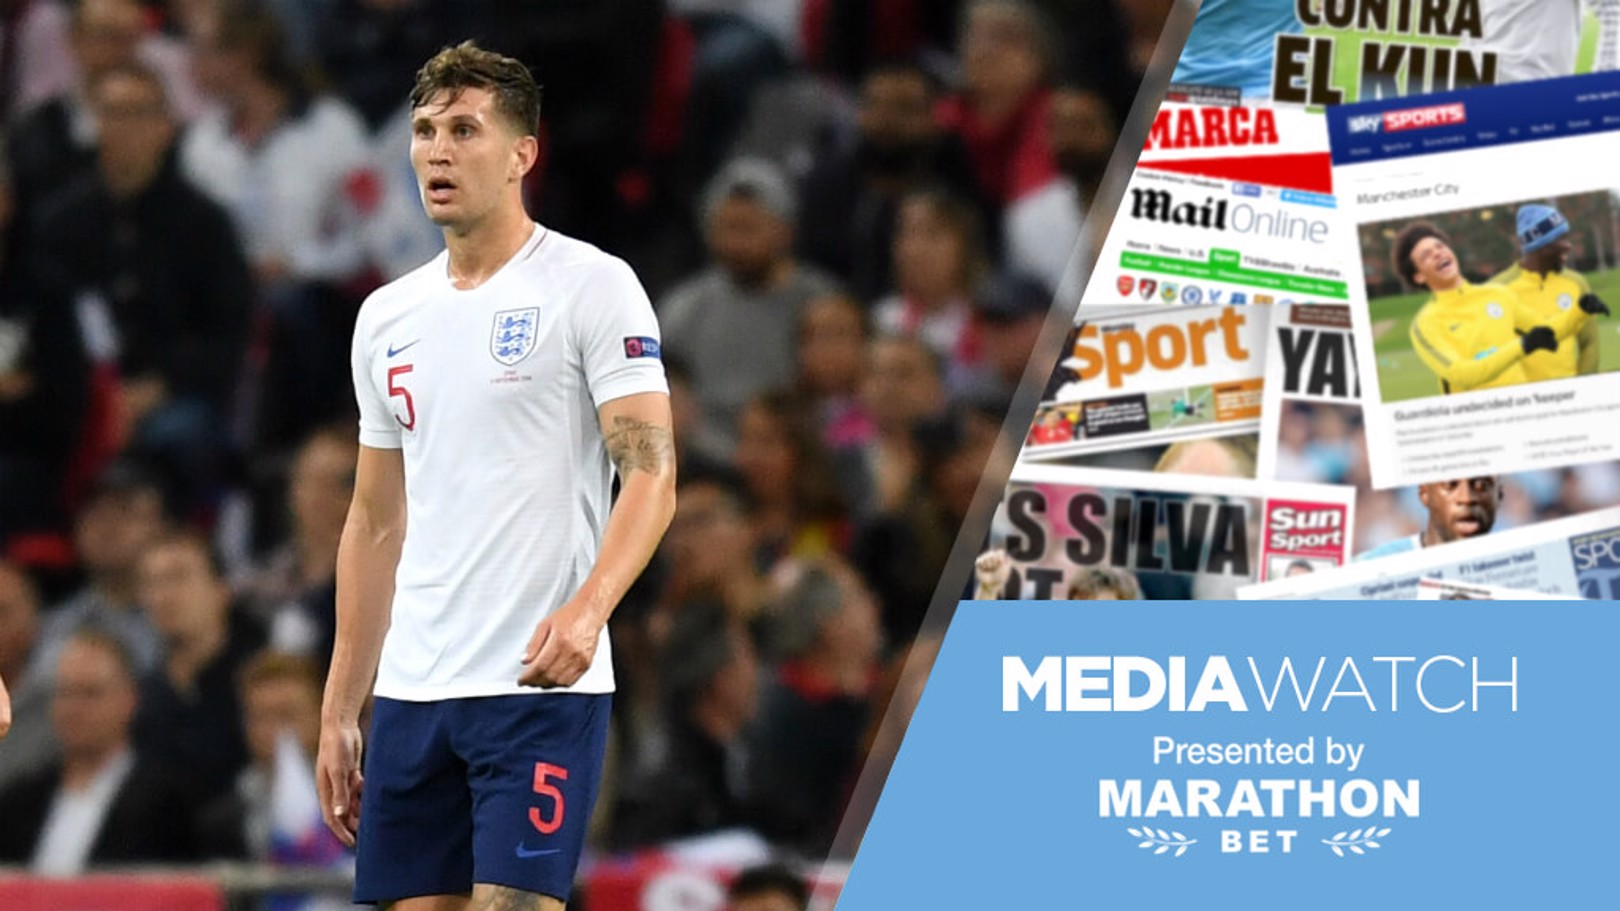 SUPER STONES: John Stones' performance for England caused a stir on social media...